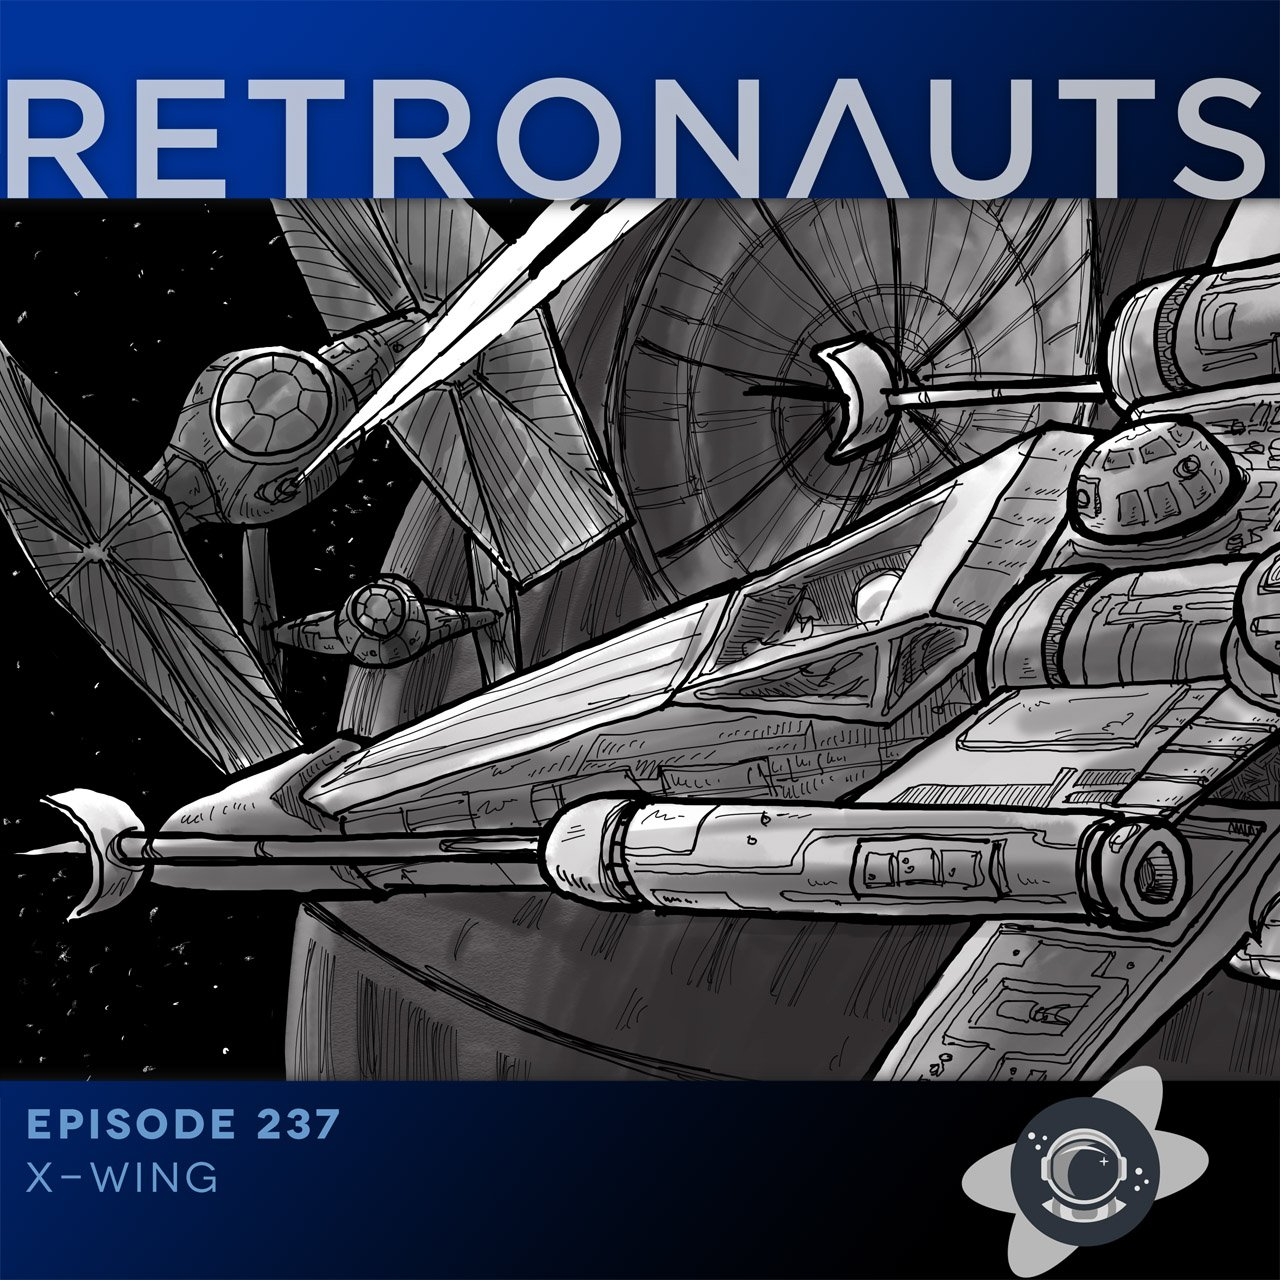 Listen To Episode 237 As You Bulls Eye Womp Rats In Your T 16 Retronauts There were three species of womp rats: episode 237 as you bulls eye womp rats